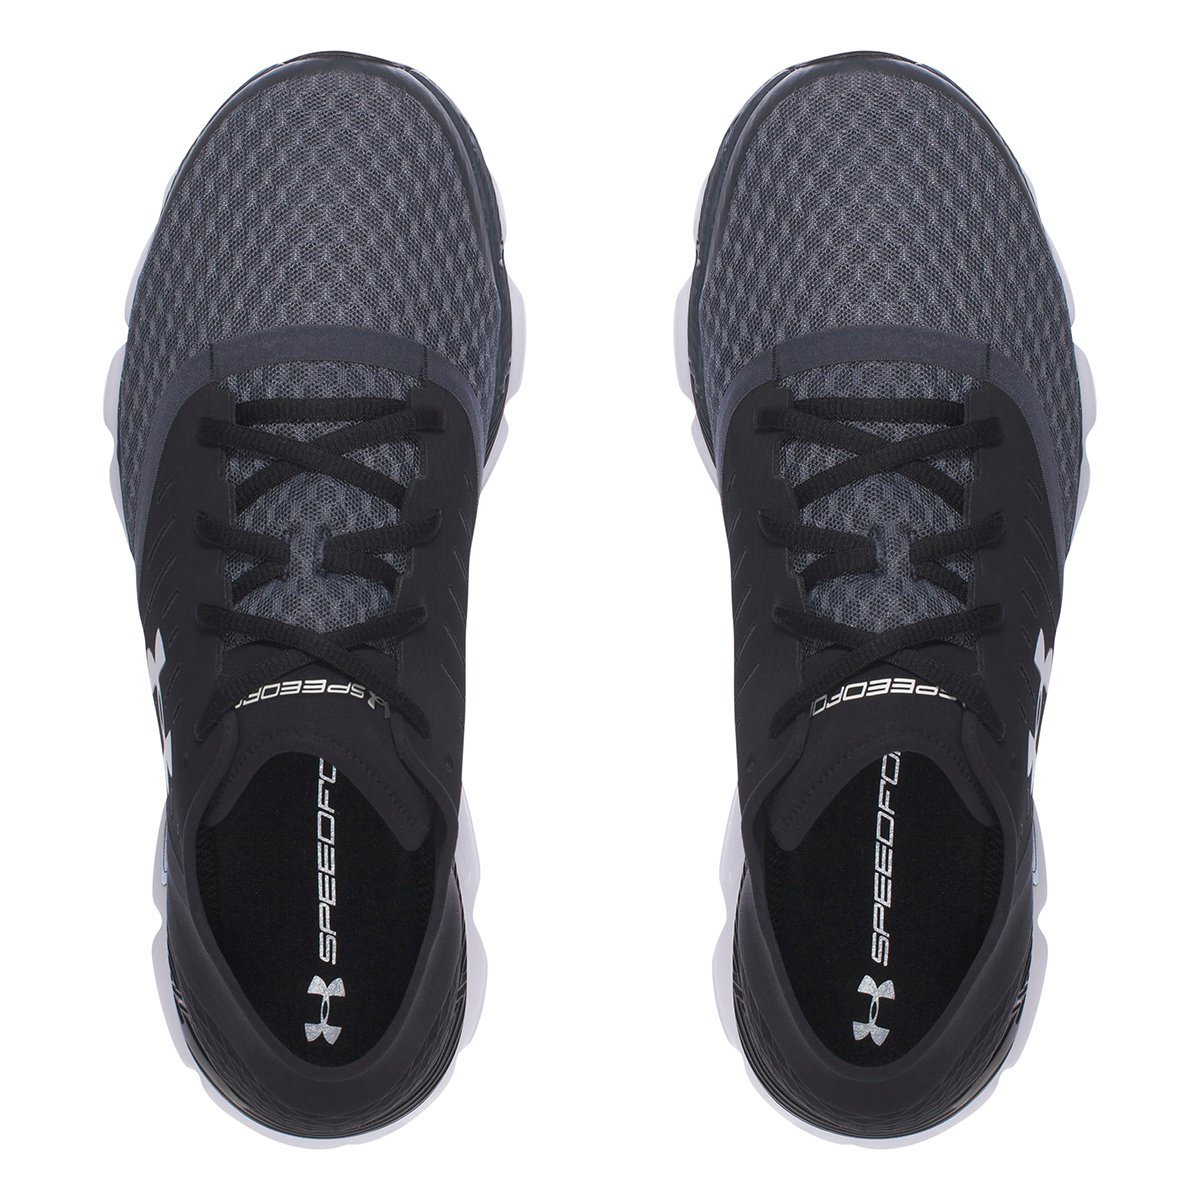 6122d0623a8 Tênis Under Armour Speedform Intake SA Masculino